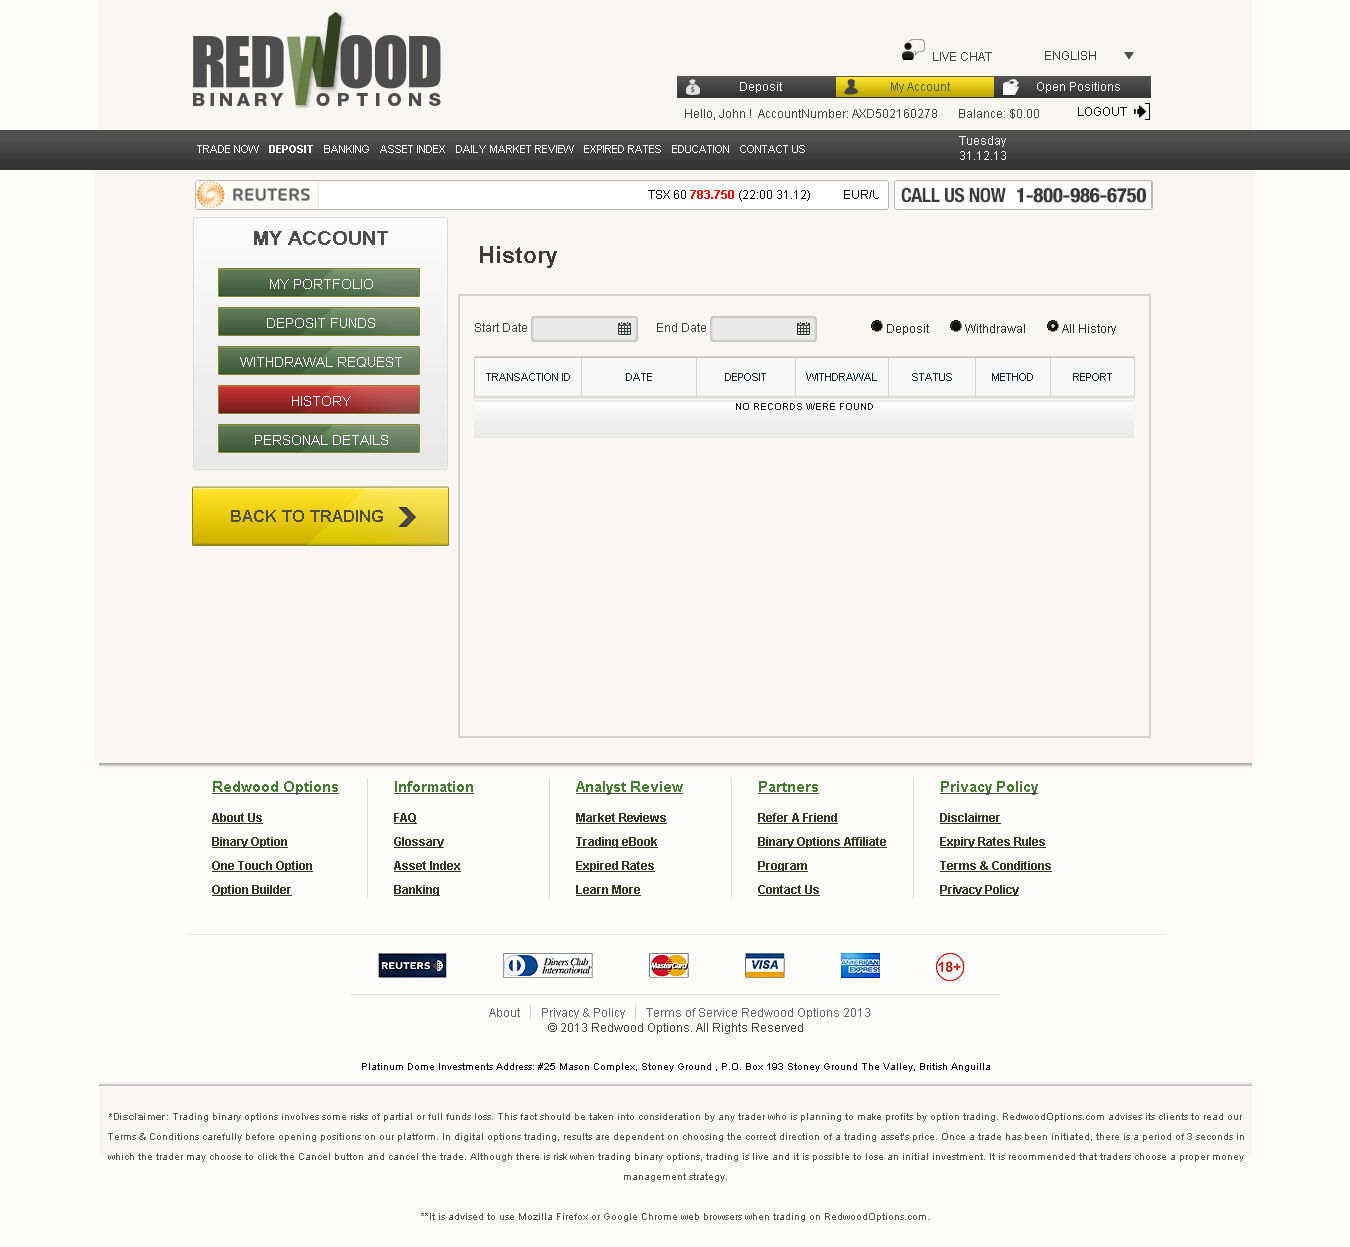 Redwood binary options regulation